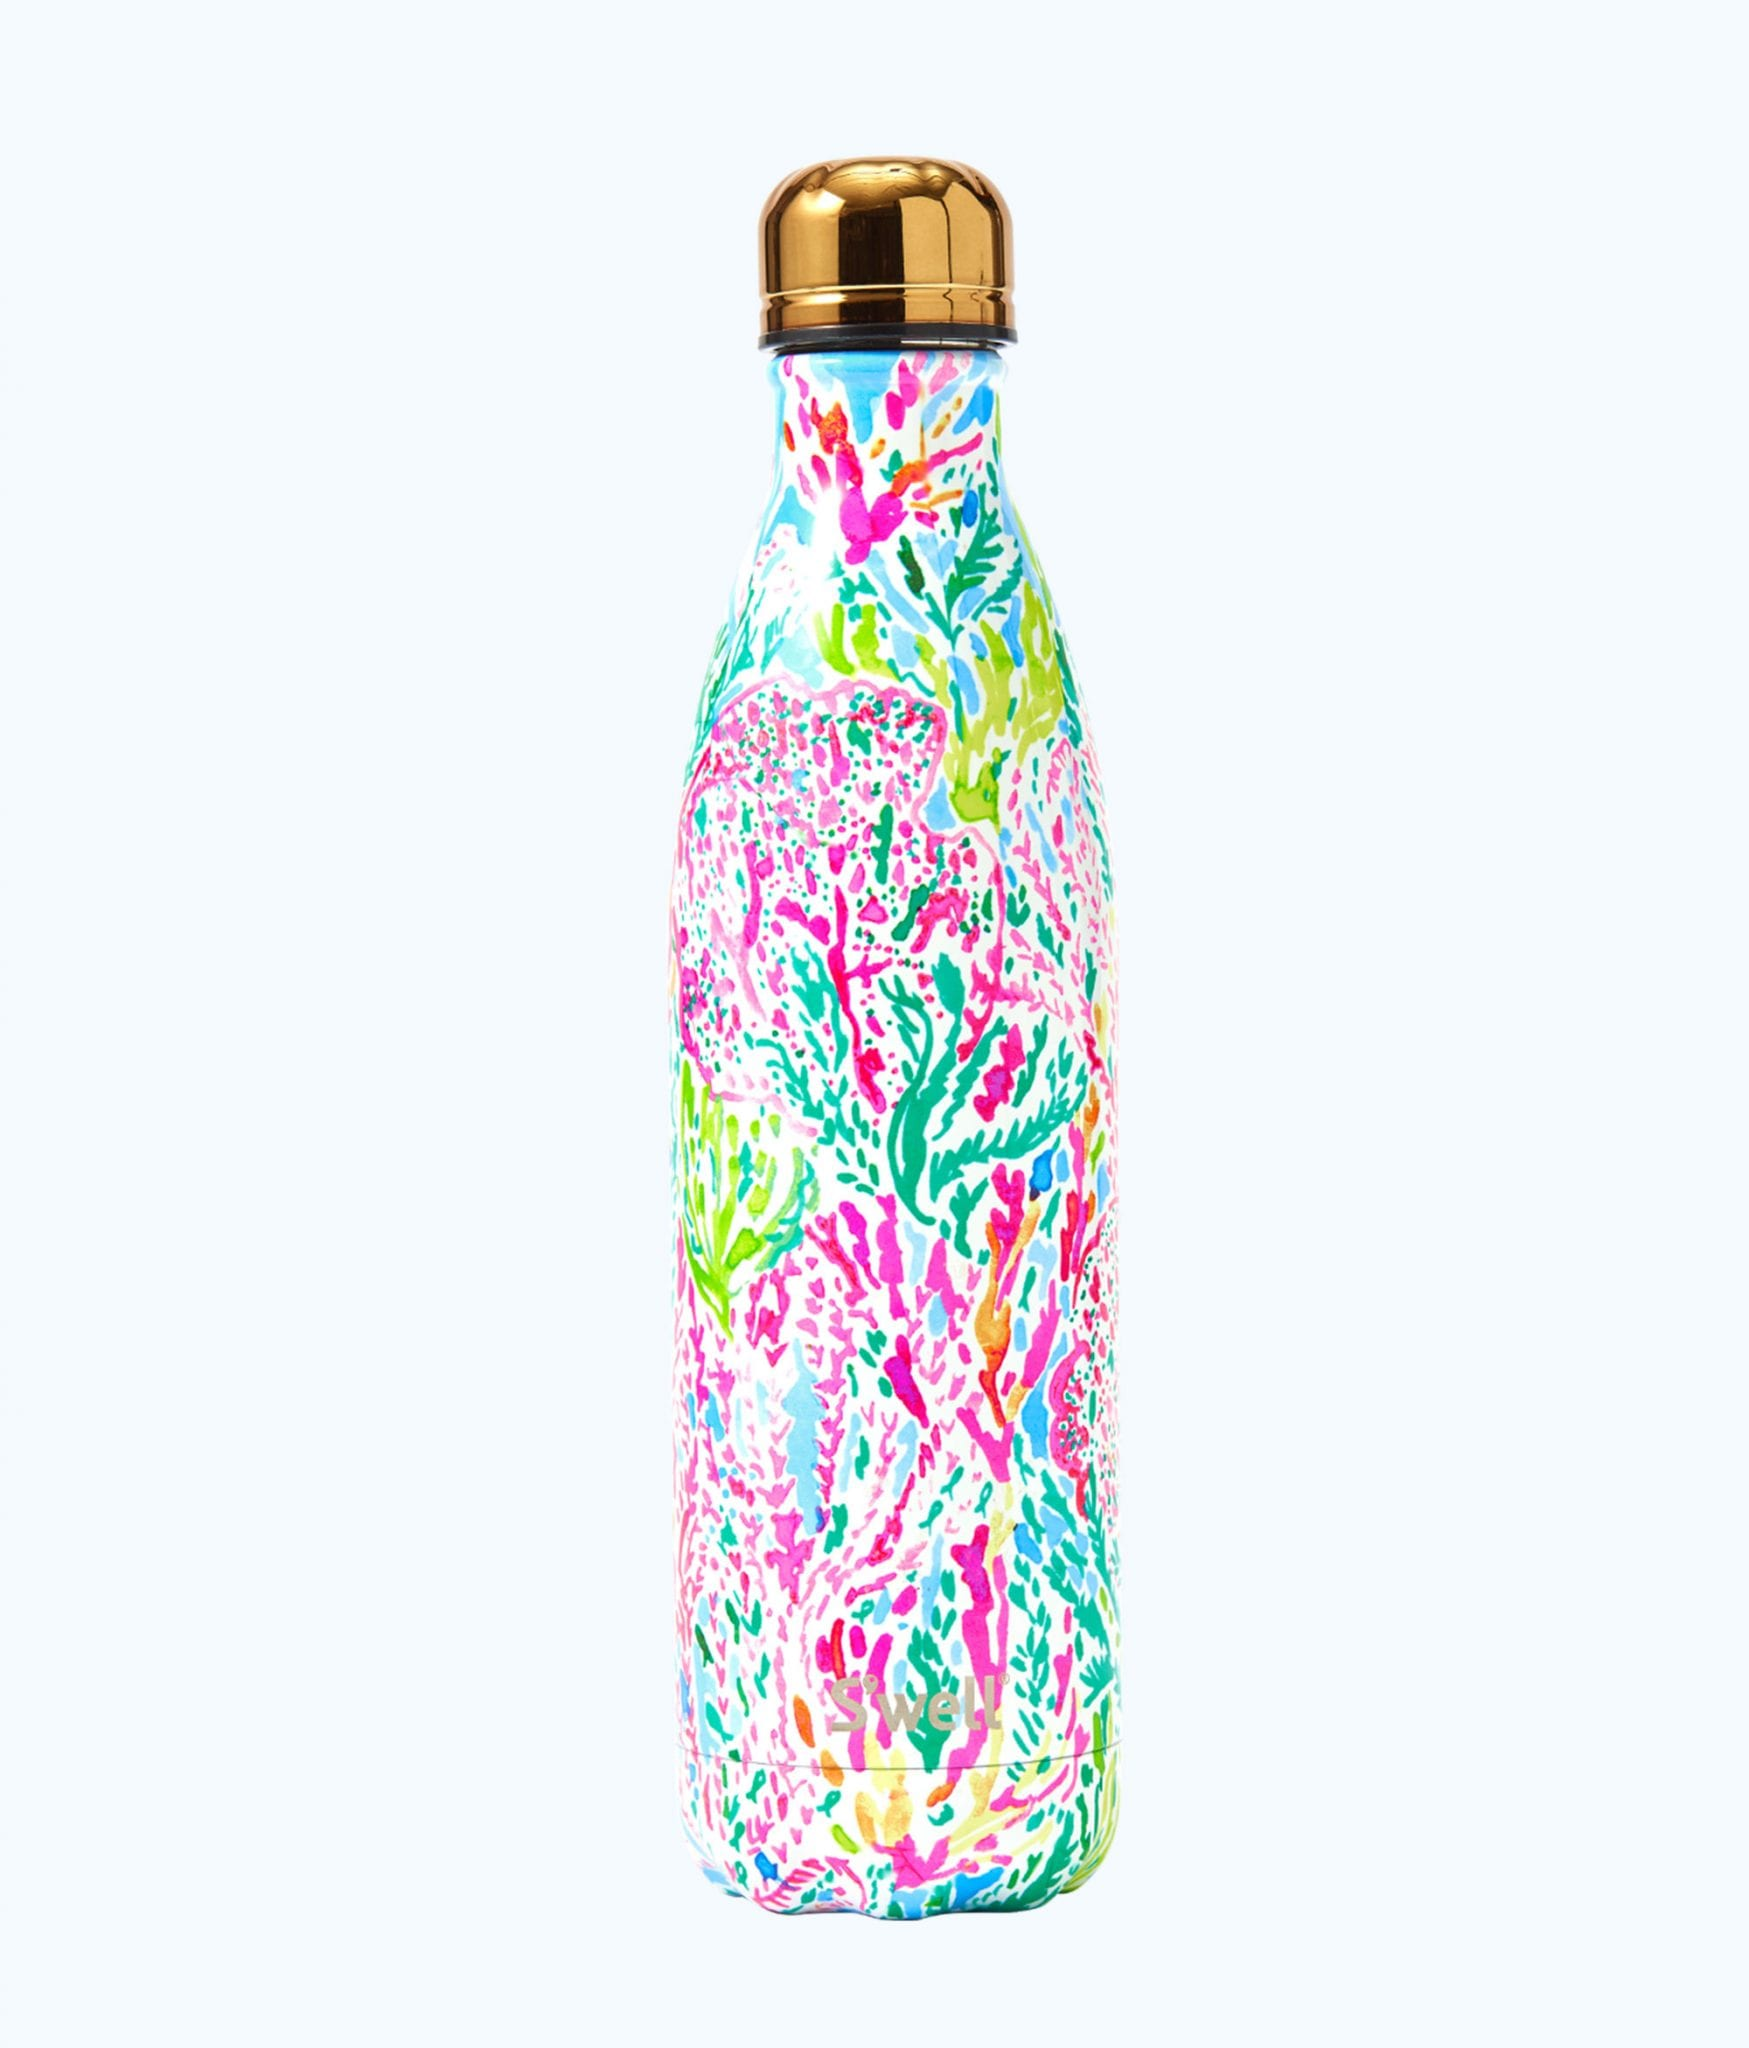 b64268a19afca5 25 OZ S'WELL BOTTLE - LET'S CHA CHA - Lilly Pulitzer Store - Life's ...